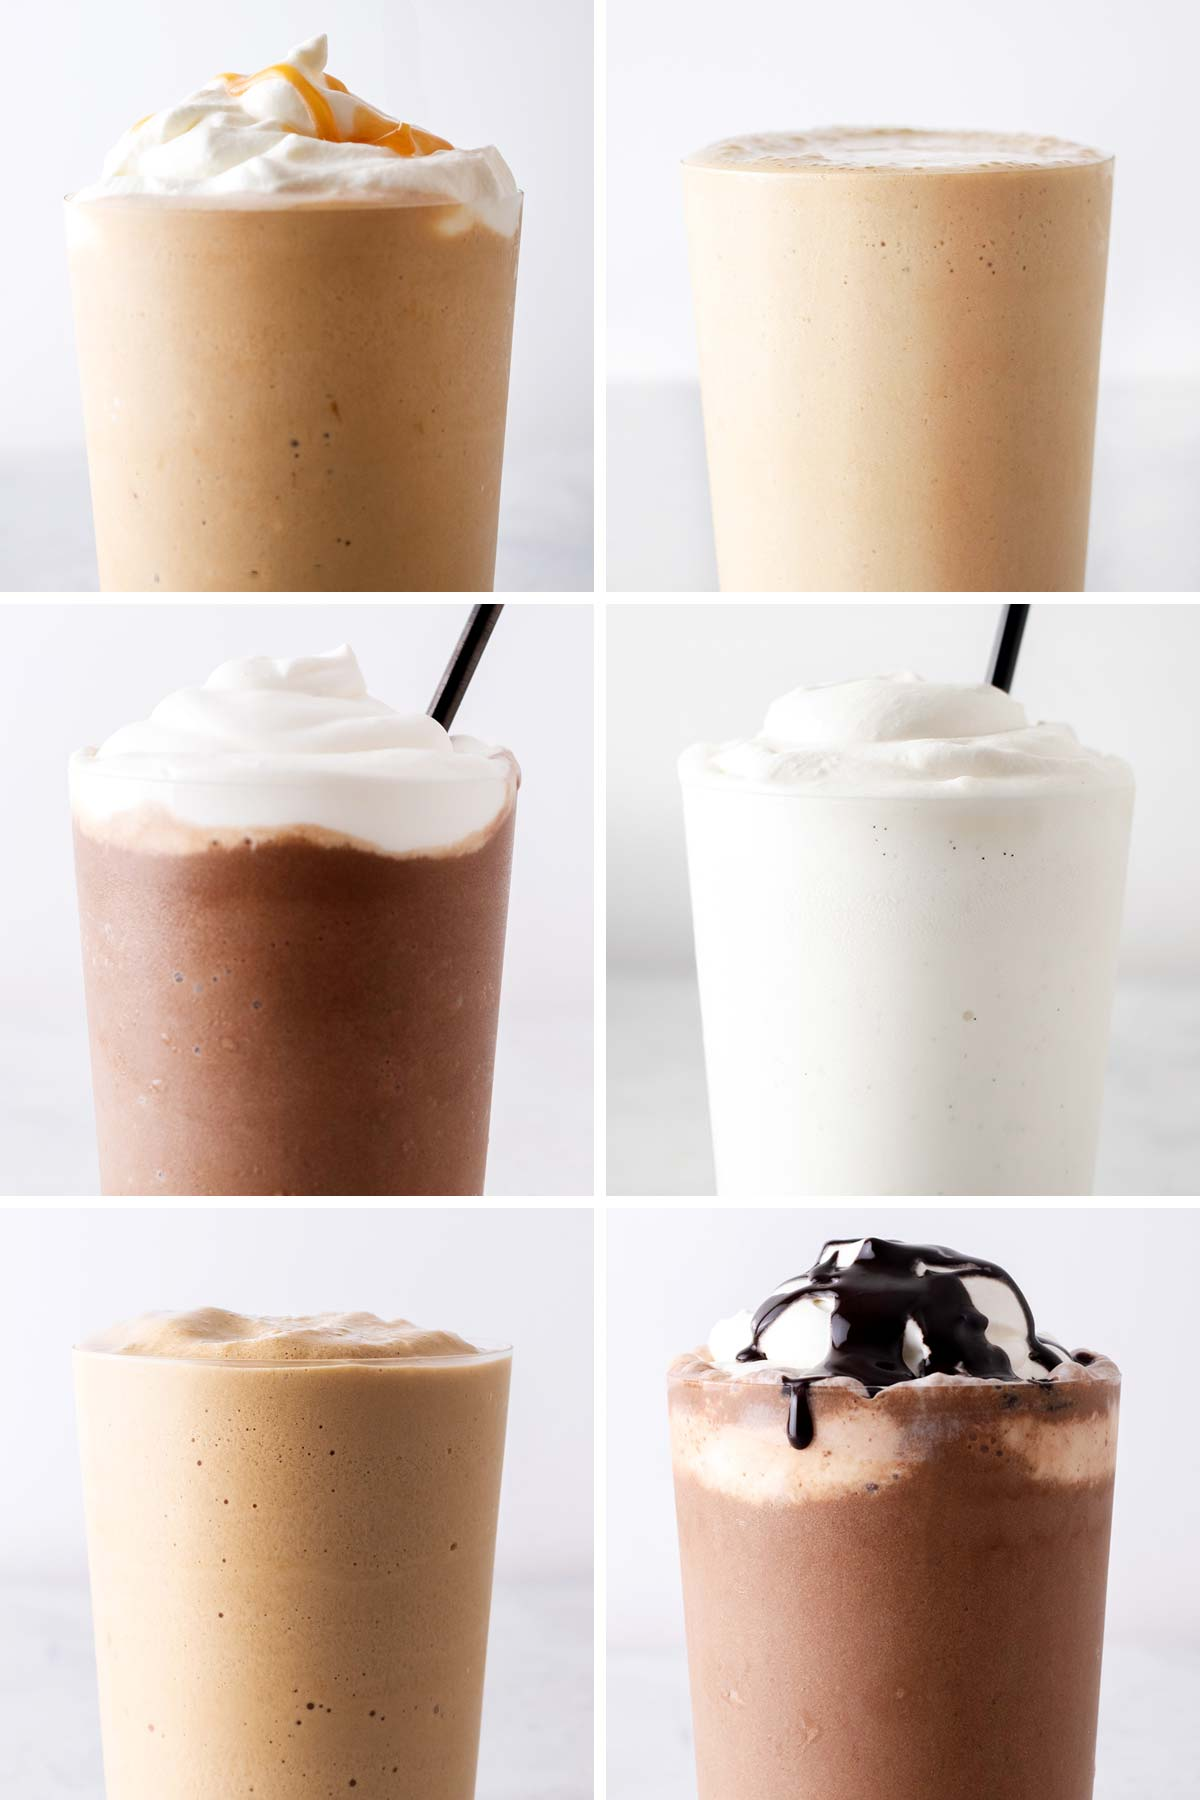 Six photo grid showing six different Frappuccino drinks.